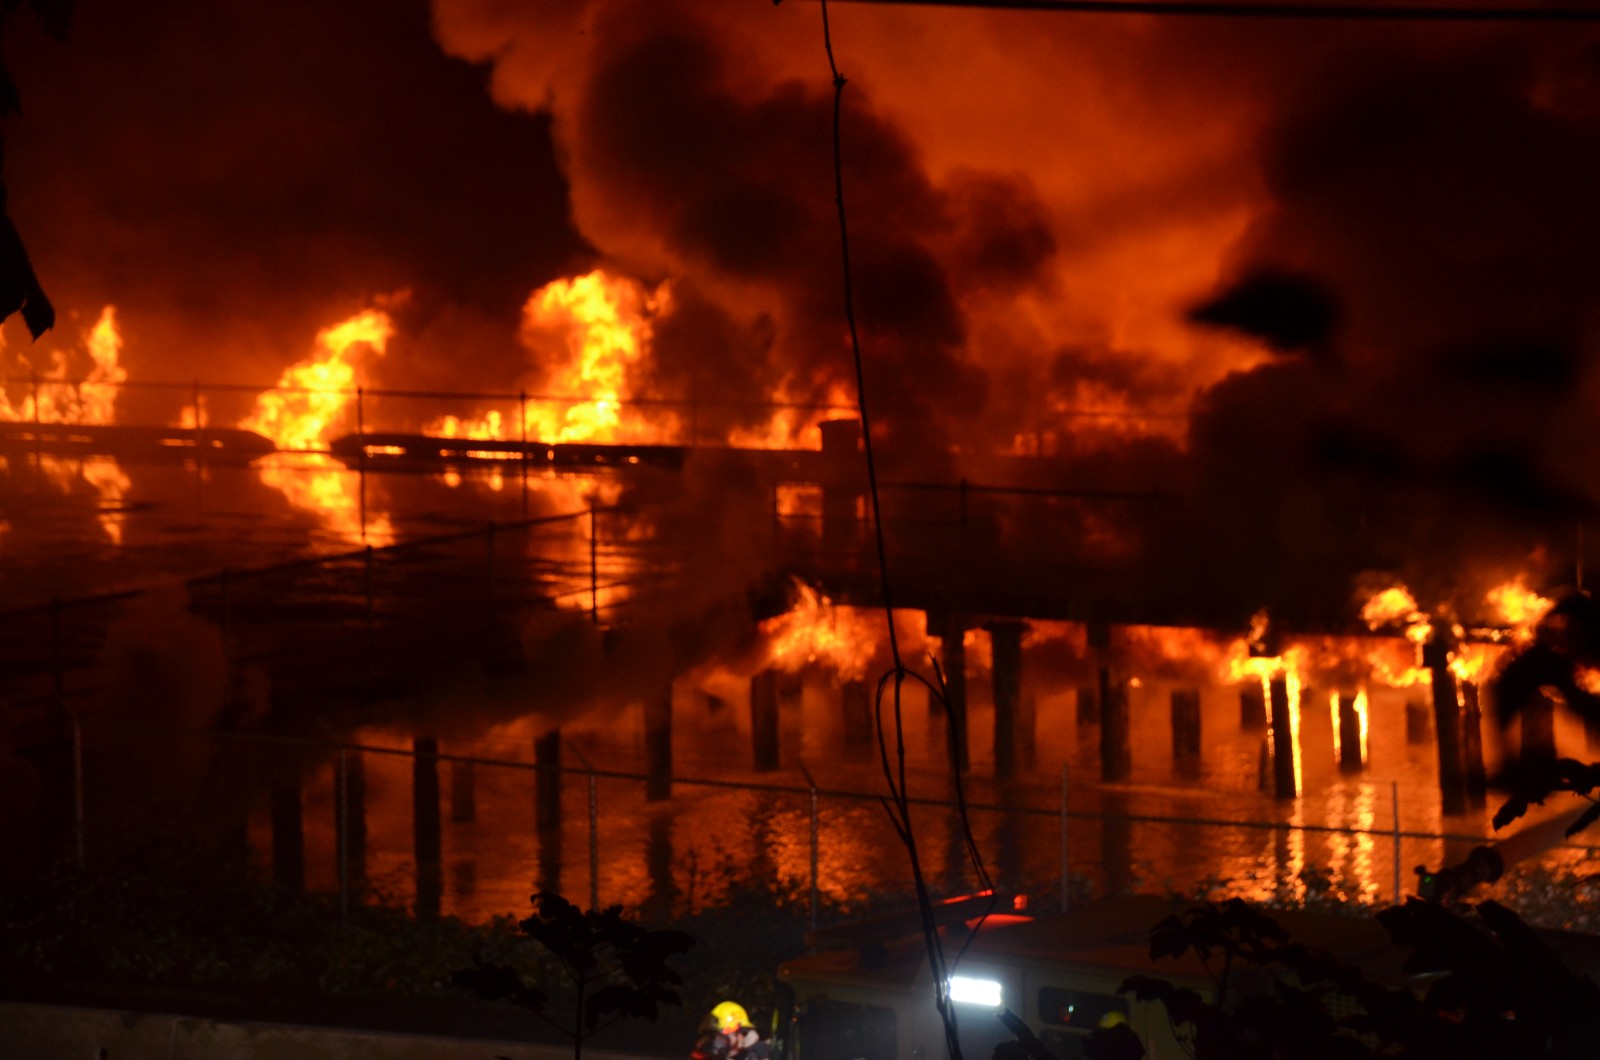 Fire at New Westminster pier fully extinguished after burning for over a week